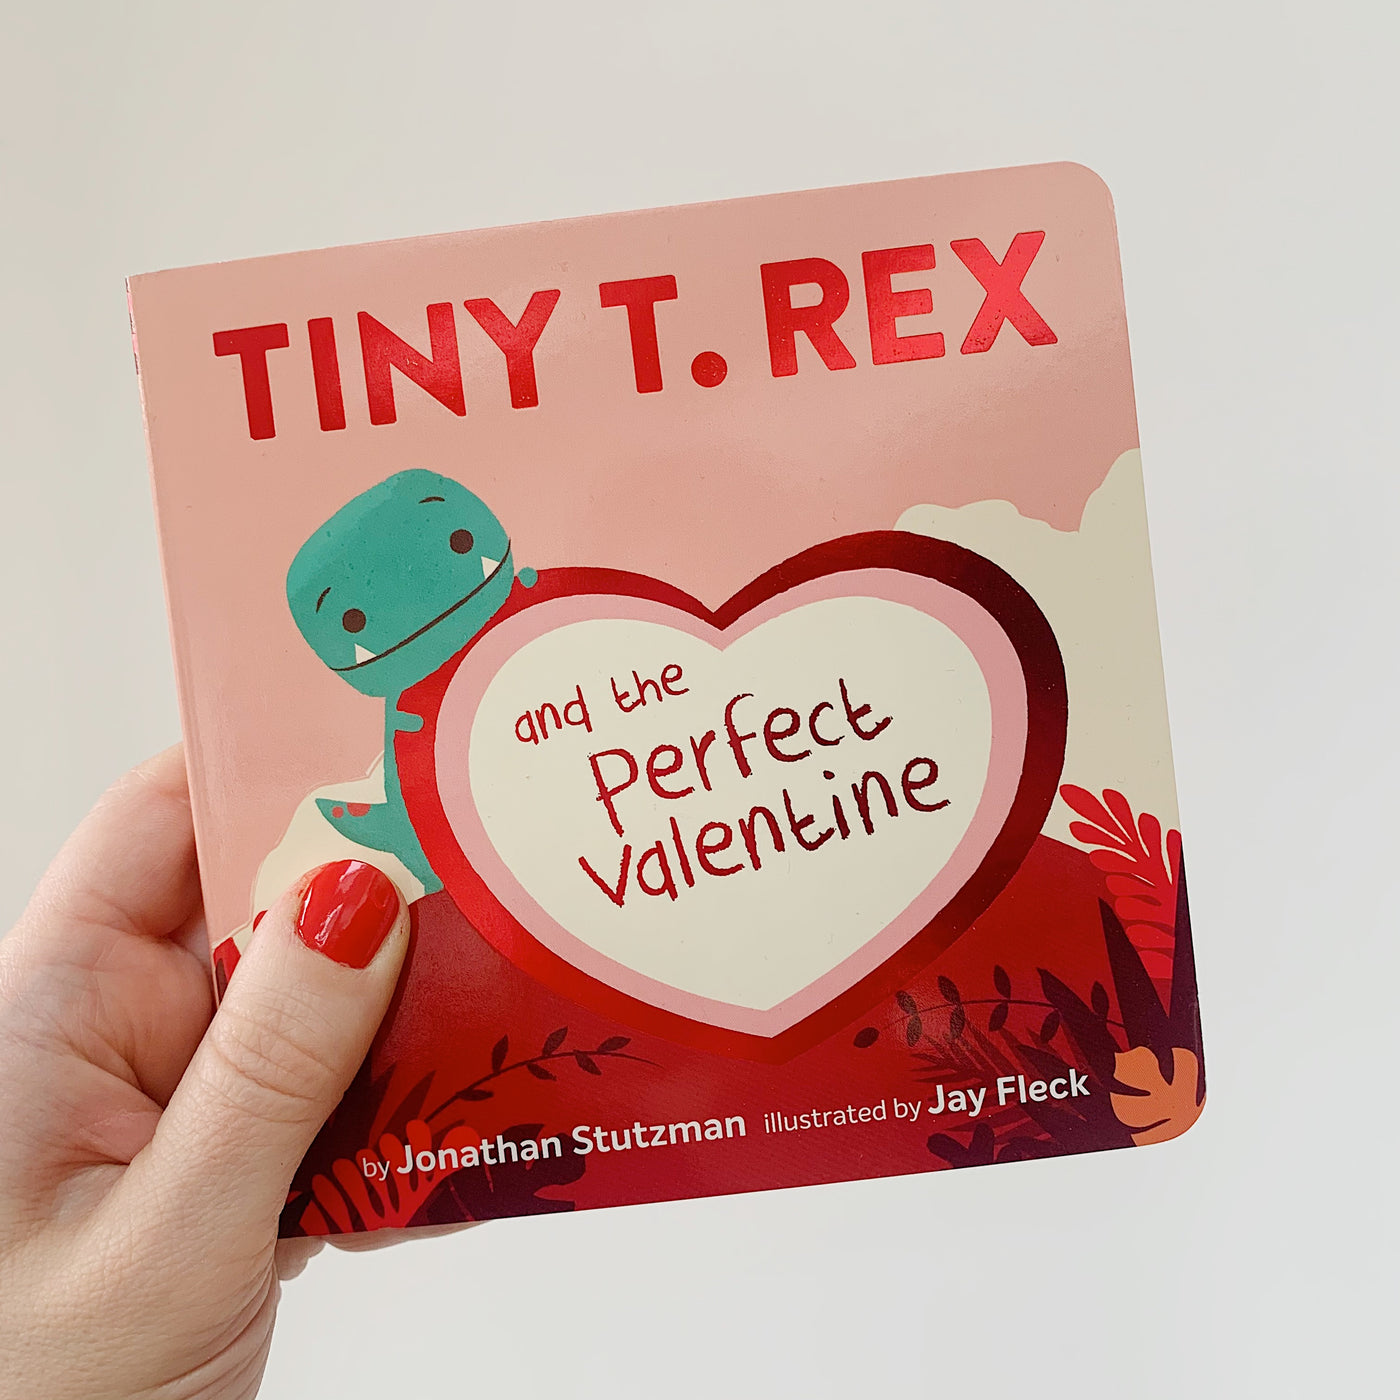 TINY T.REX AND THE PERFECT VALENTINE